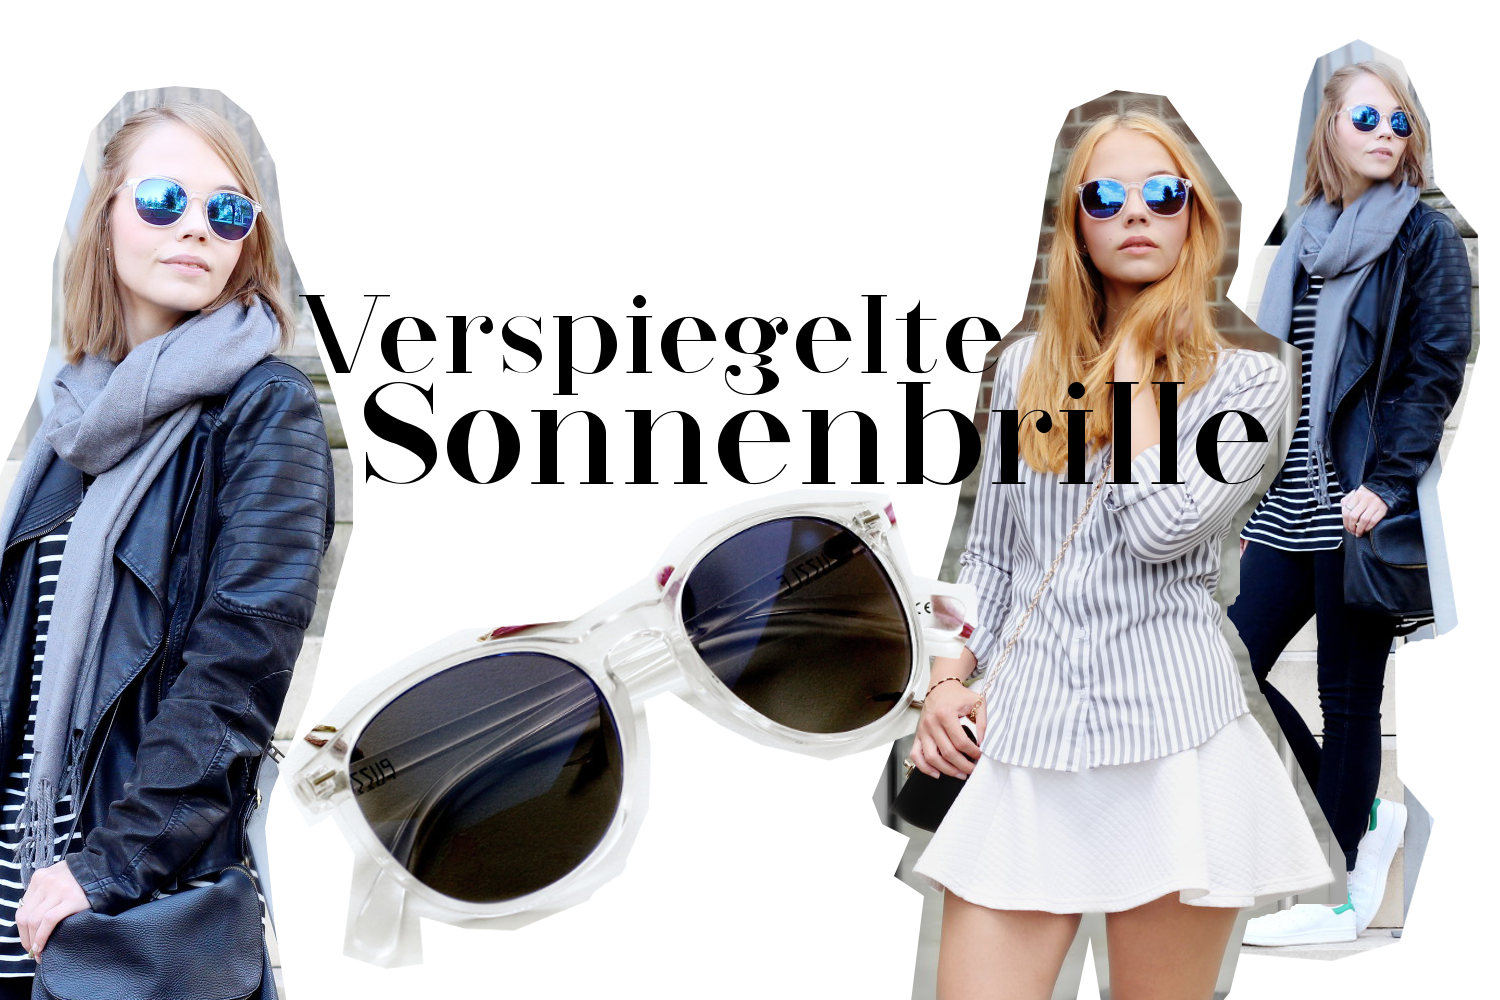 bezaubernde nana, bezauberndenana.de, fashionblog, modeblog, germany, deutschland, mode favoriten 2015, trends 2015, fashion, mode, verspiegelte sonnenbrille